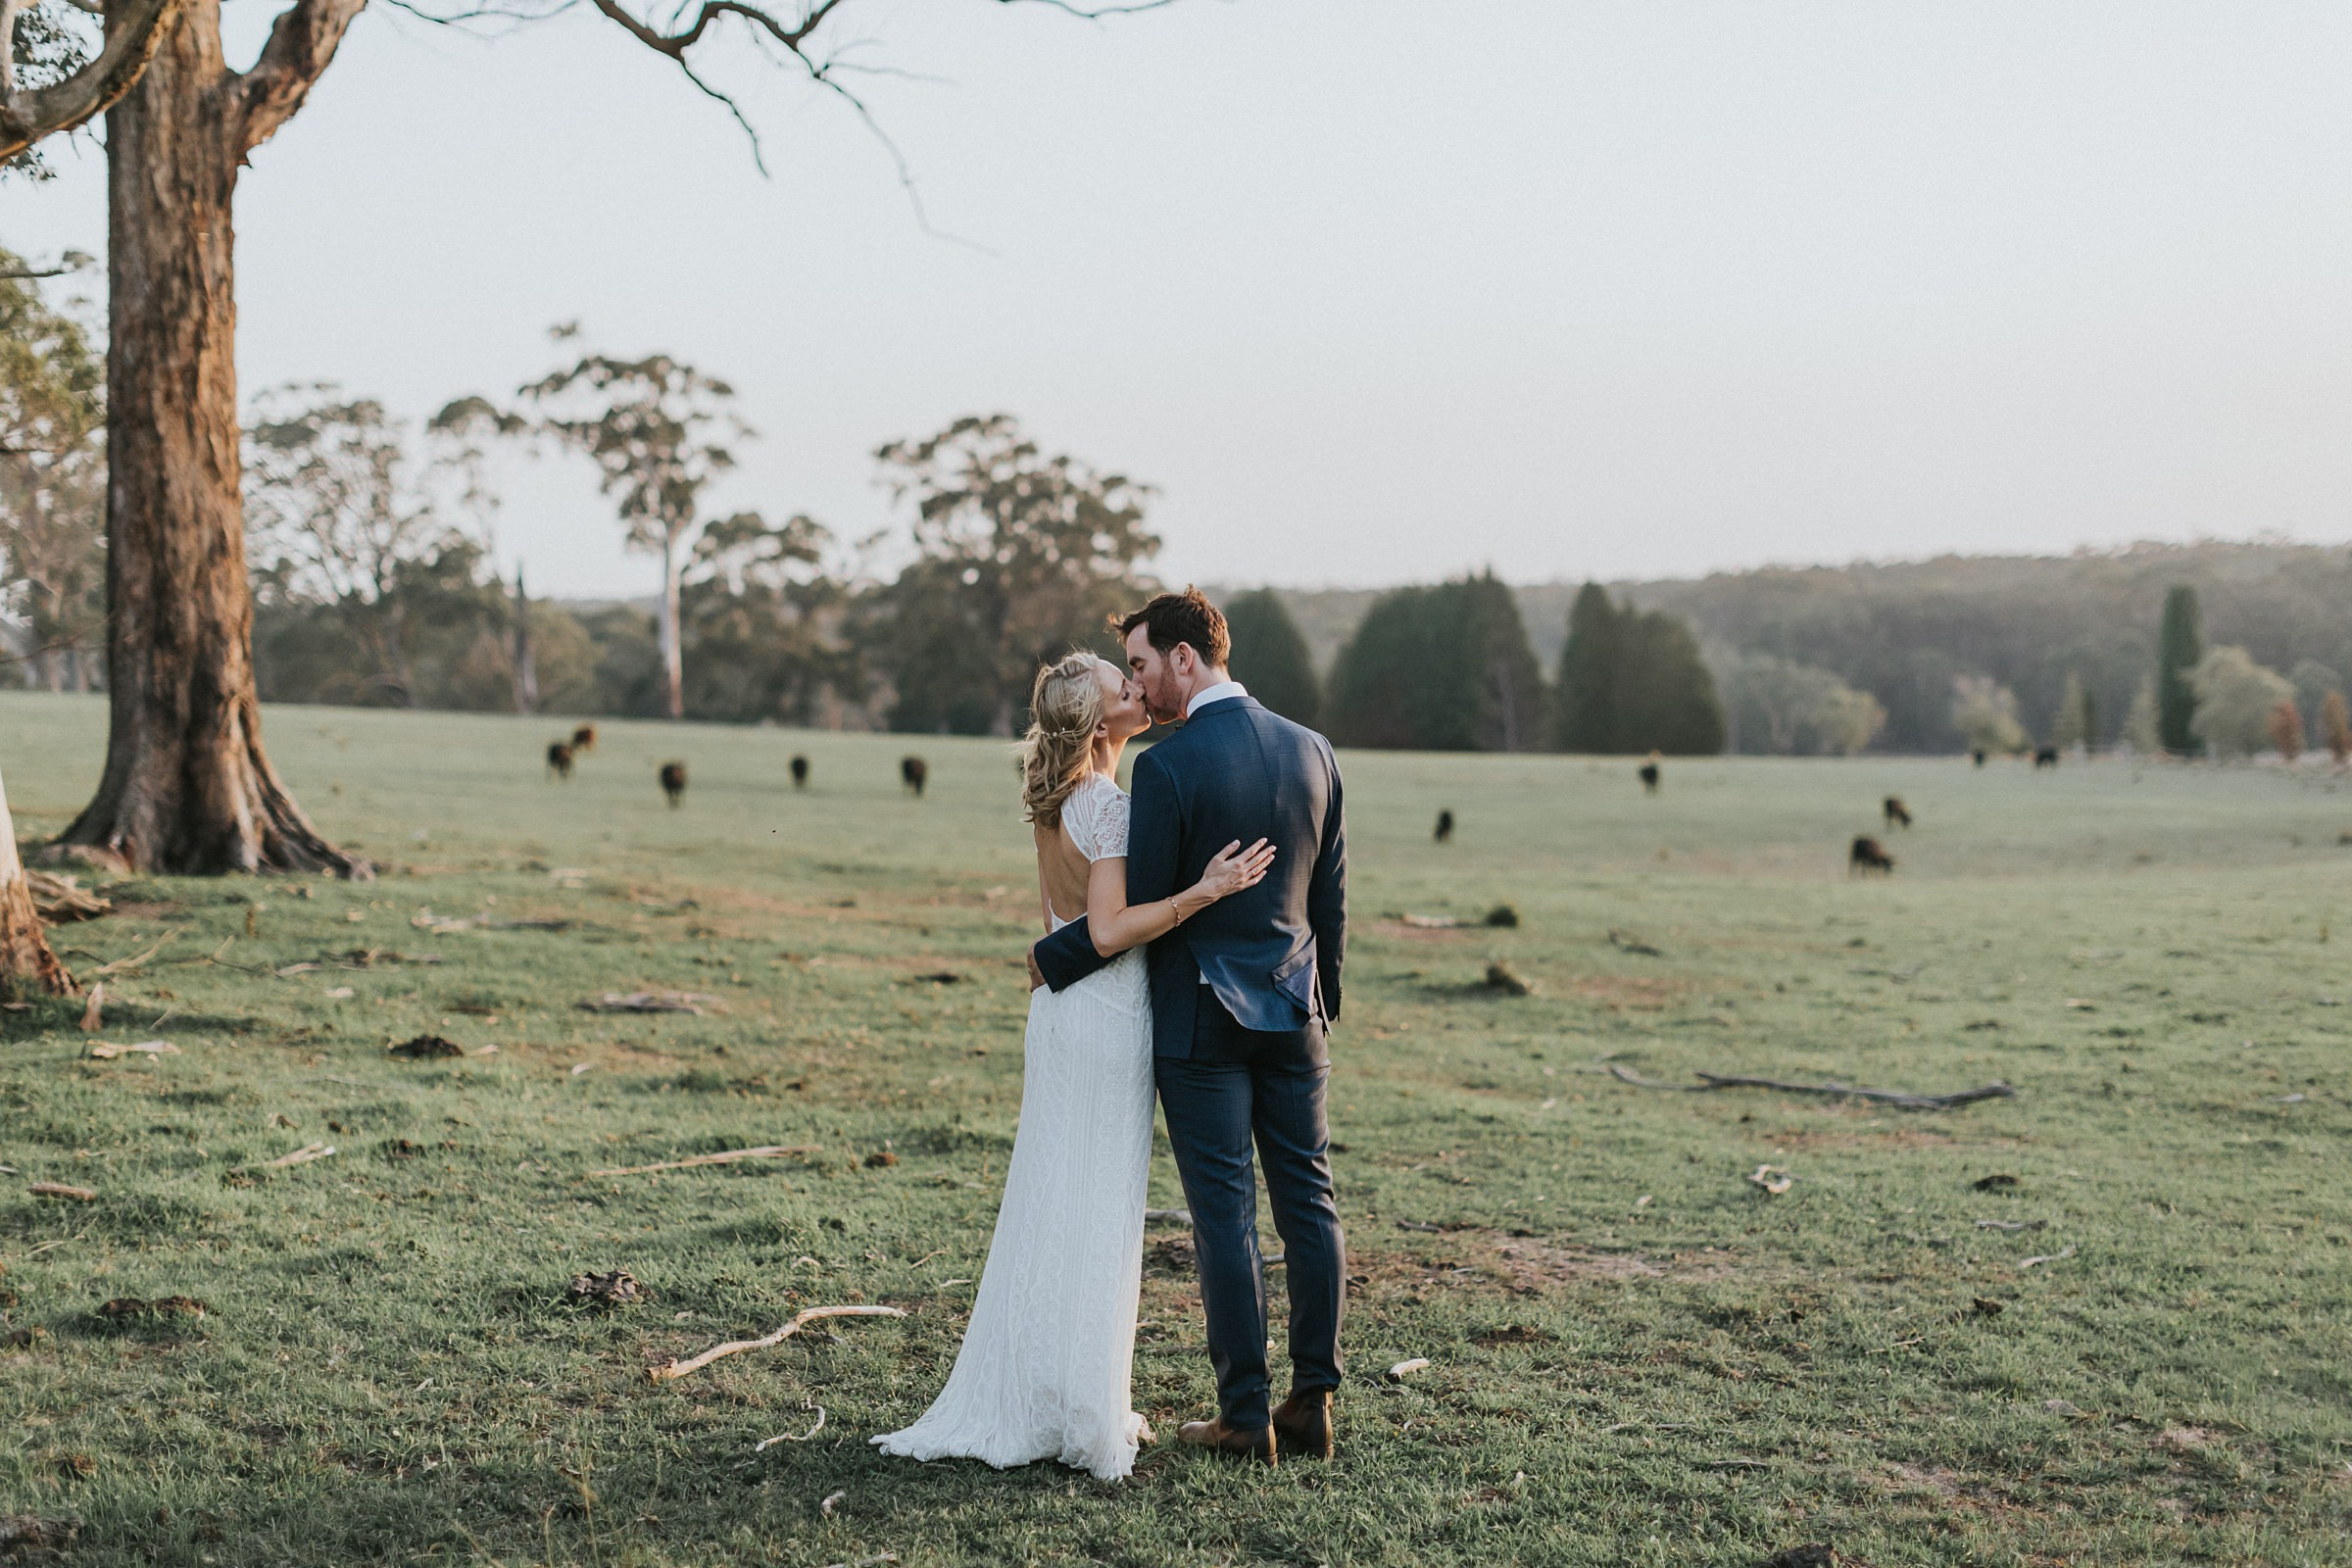 natural wedding portraits in kangaroo valley